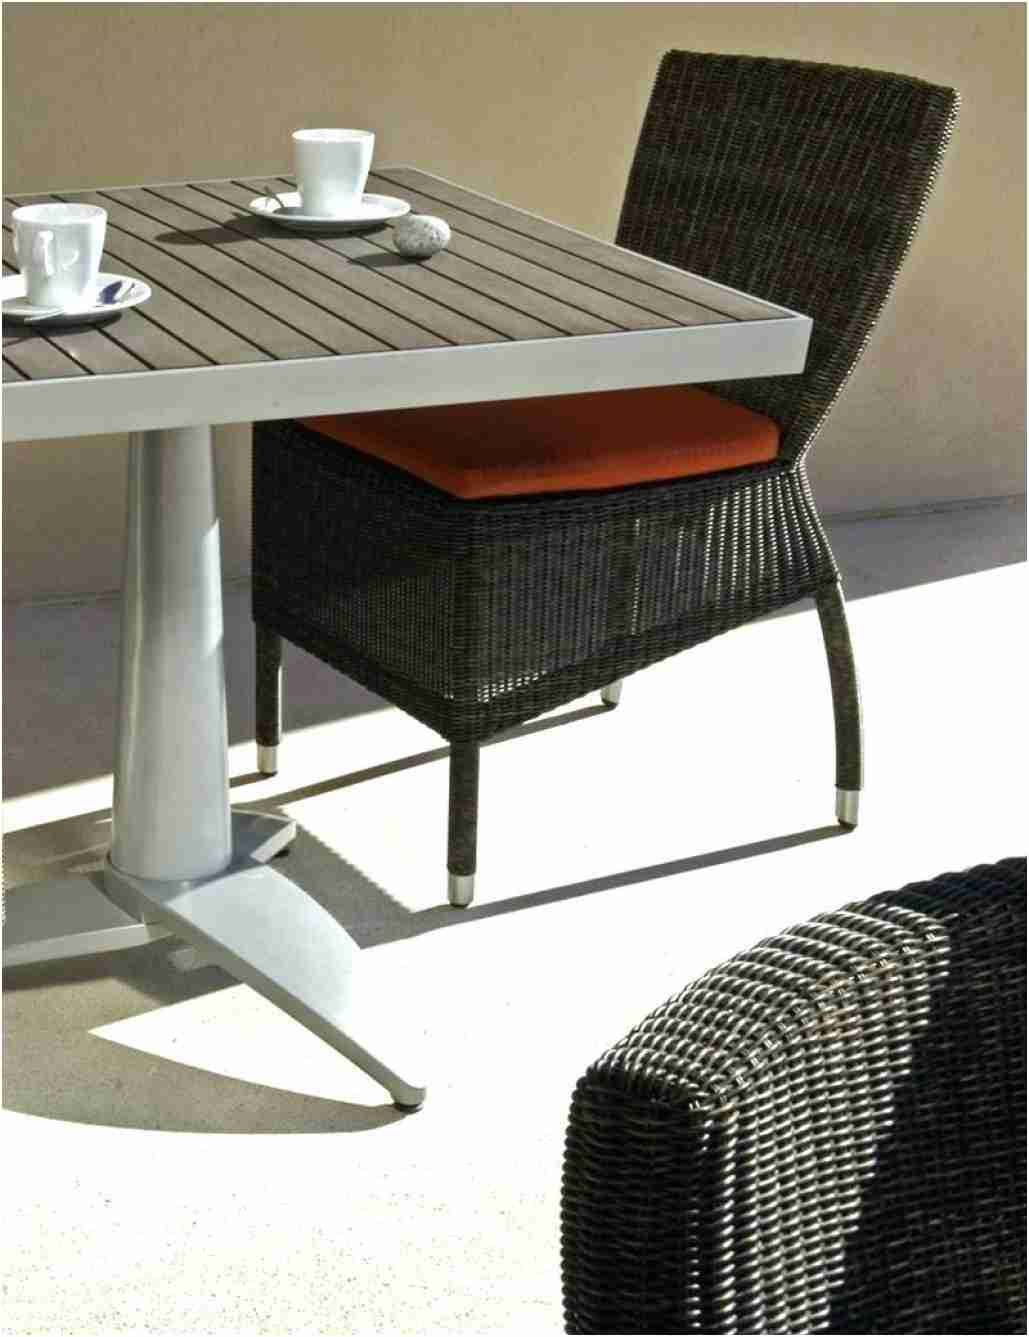 Chaise Bistrot Bois Pas Cher Charmant Terrasse Occasion Of 33 Charmant Chaise Bistrot Bois Pas Cher